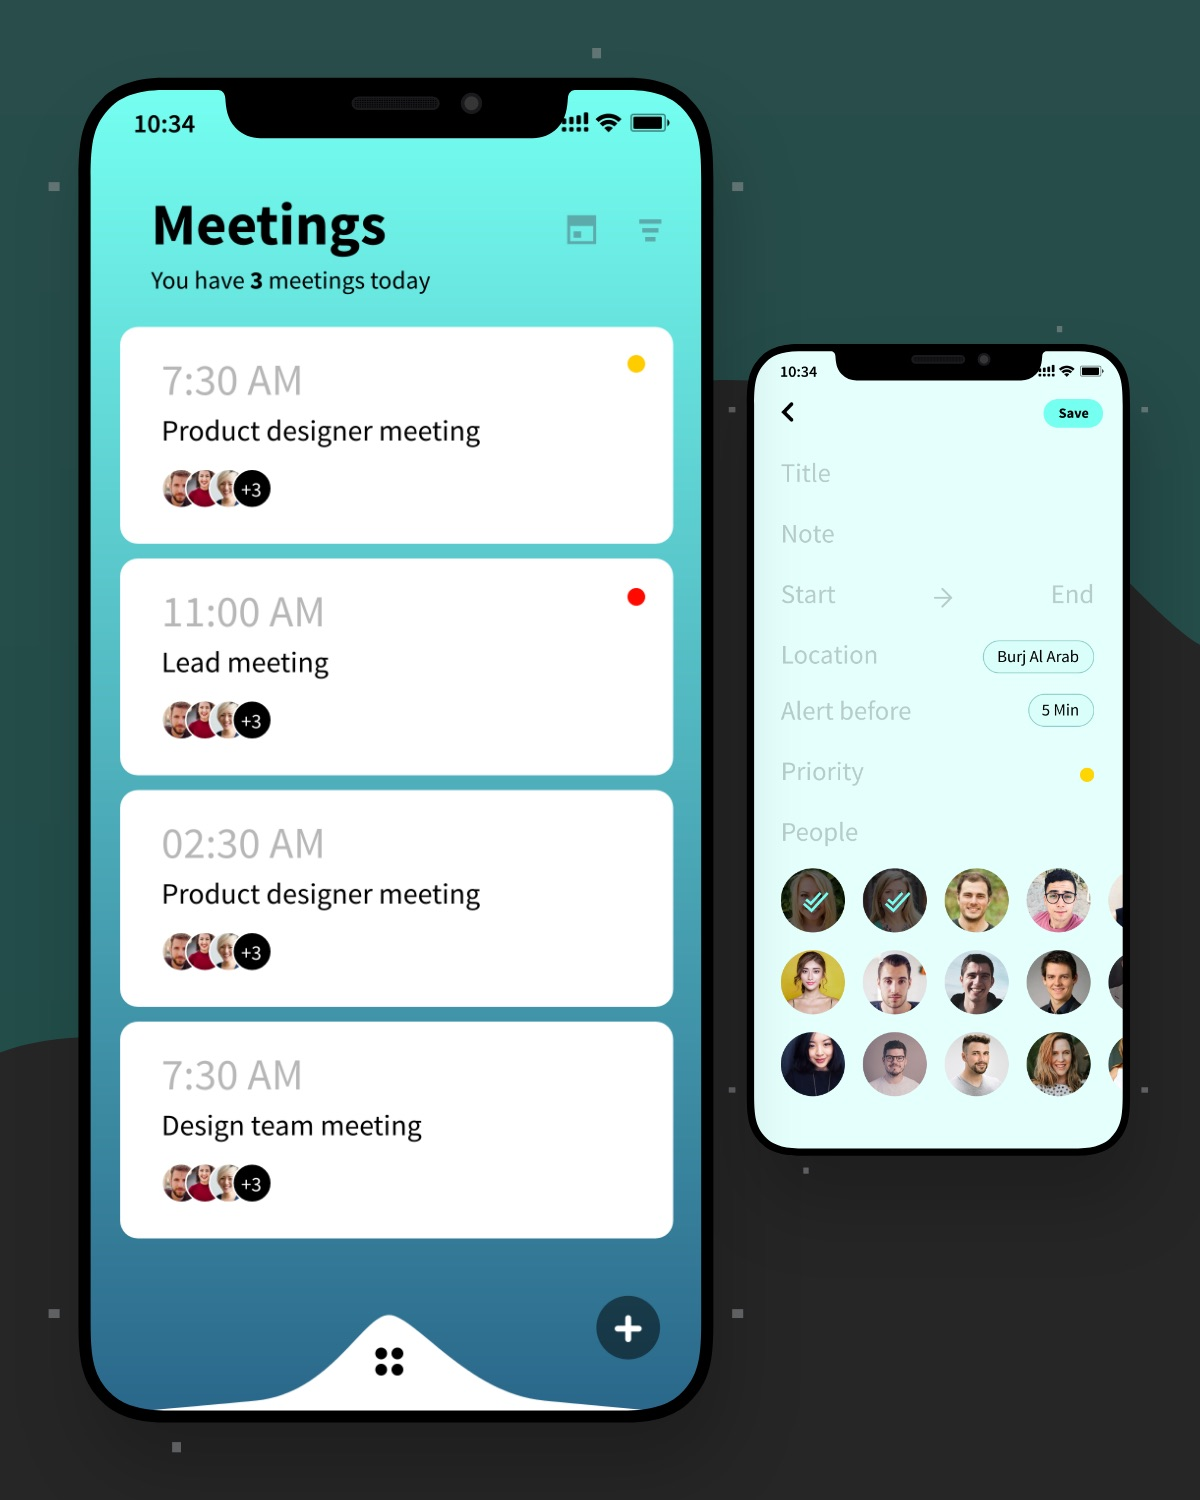 Meeting Organizer App UI/UX Design by www.iamrakesh.com | Life and Travel by Rakesh | UI/UX Designer | Vlogger